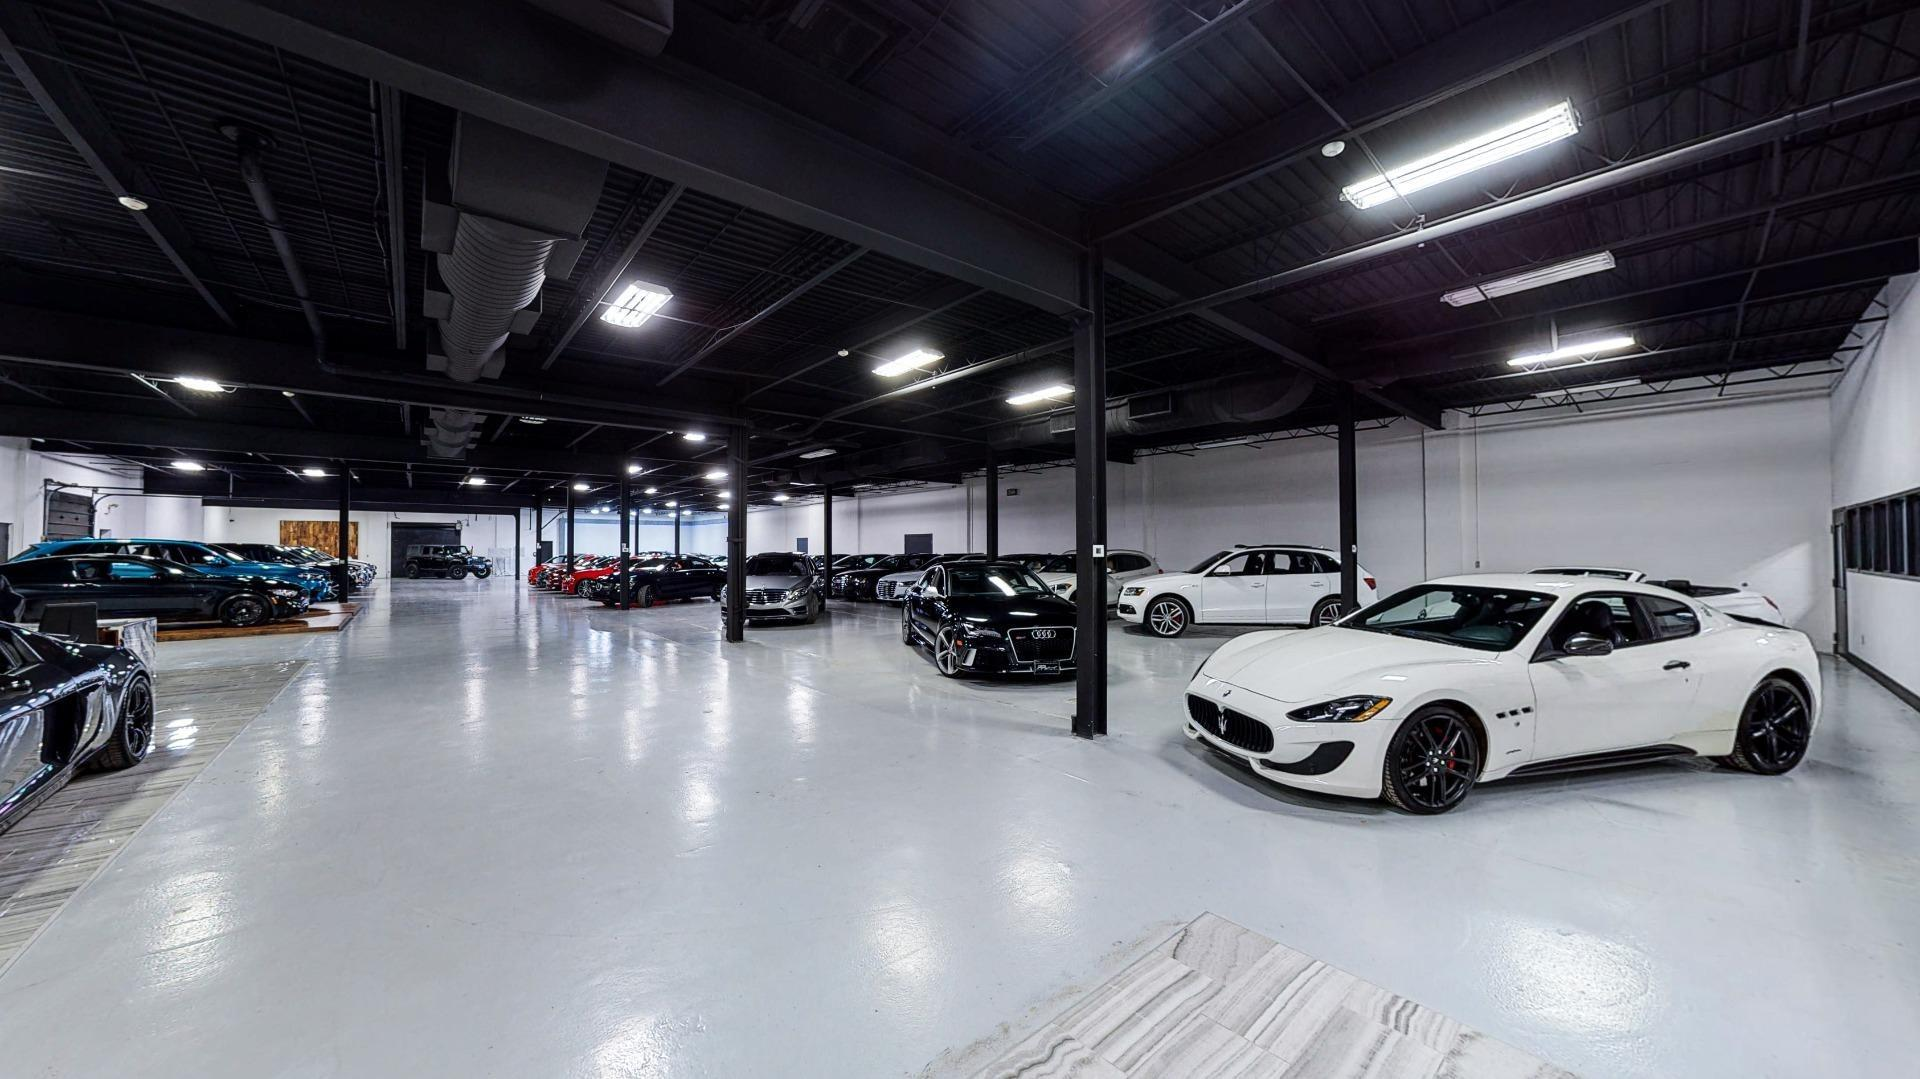 Used 2017 Jaguar F-TYPE S for sale $48,793 at Perfect Auto Collection in Akron OH 44310 2